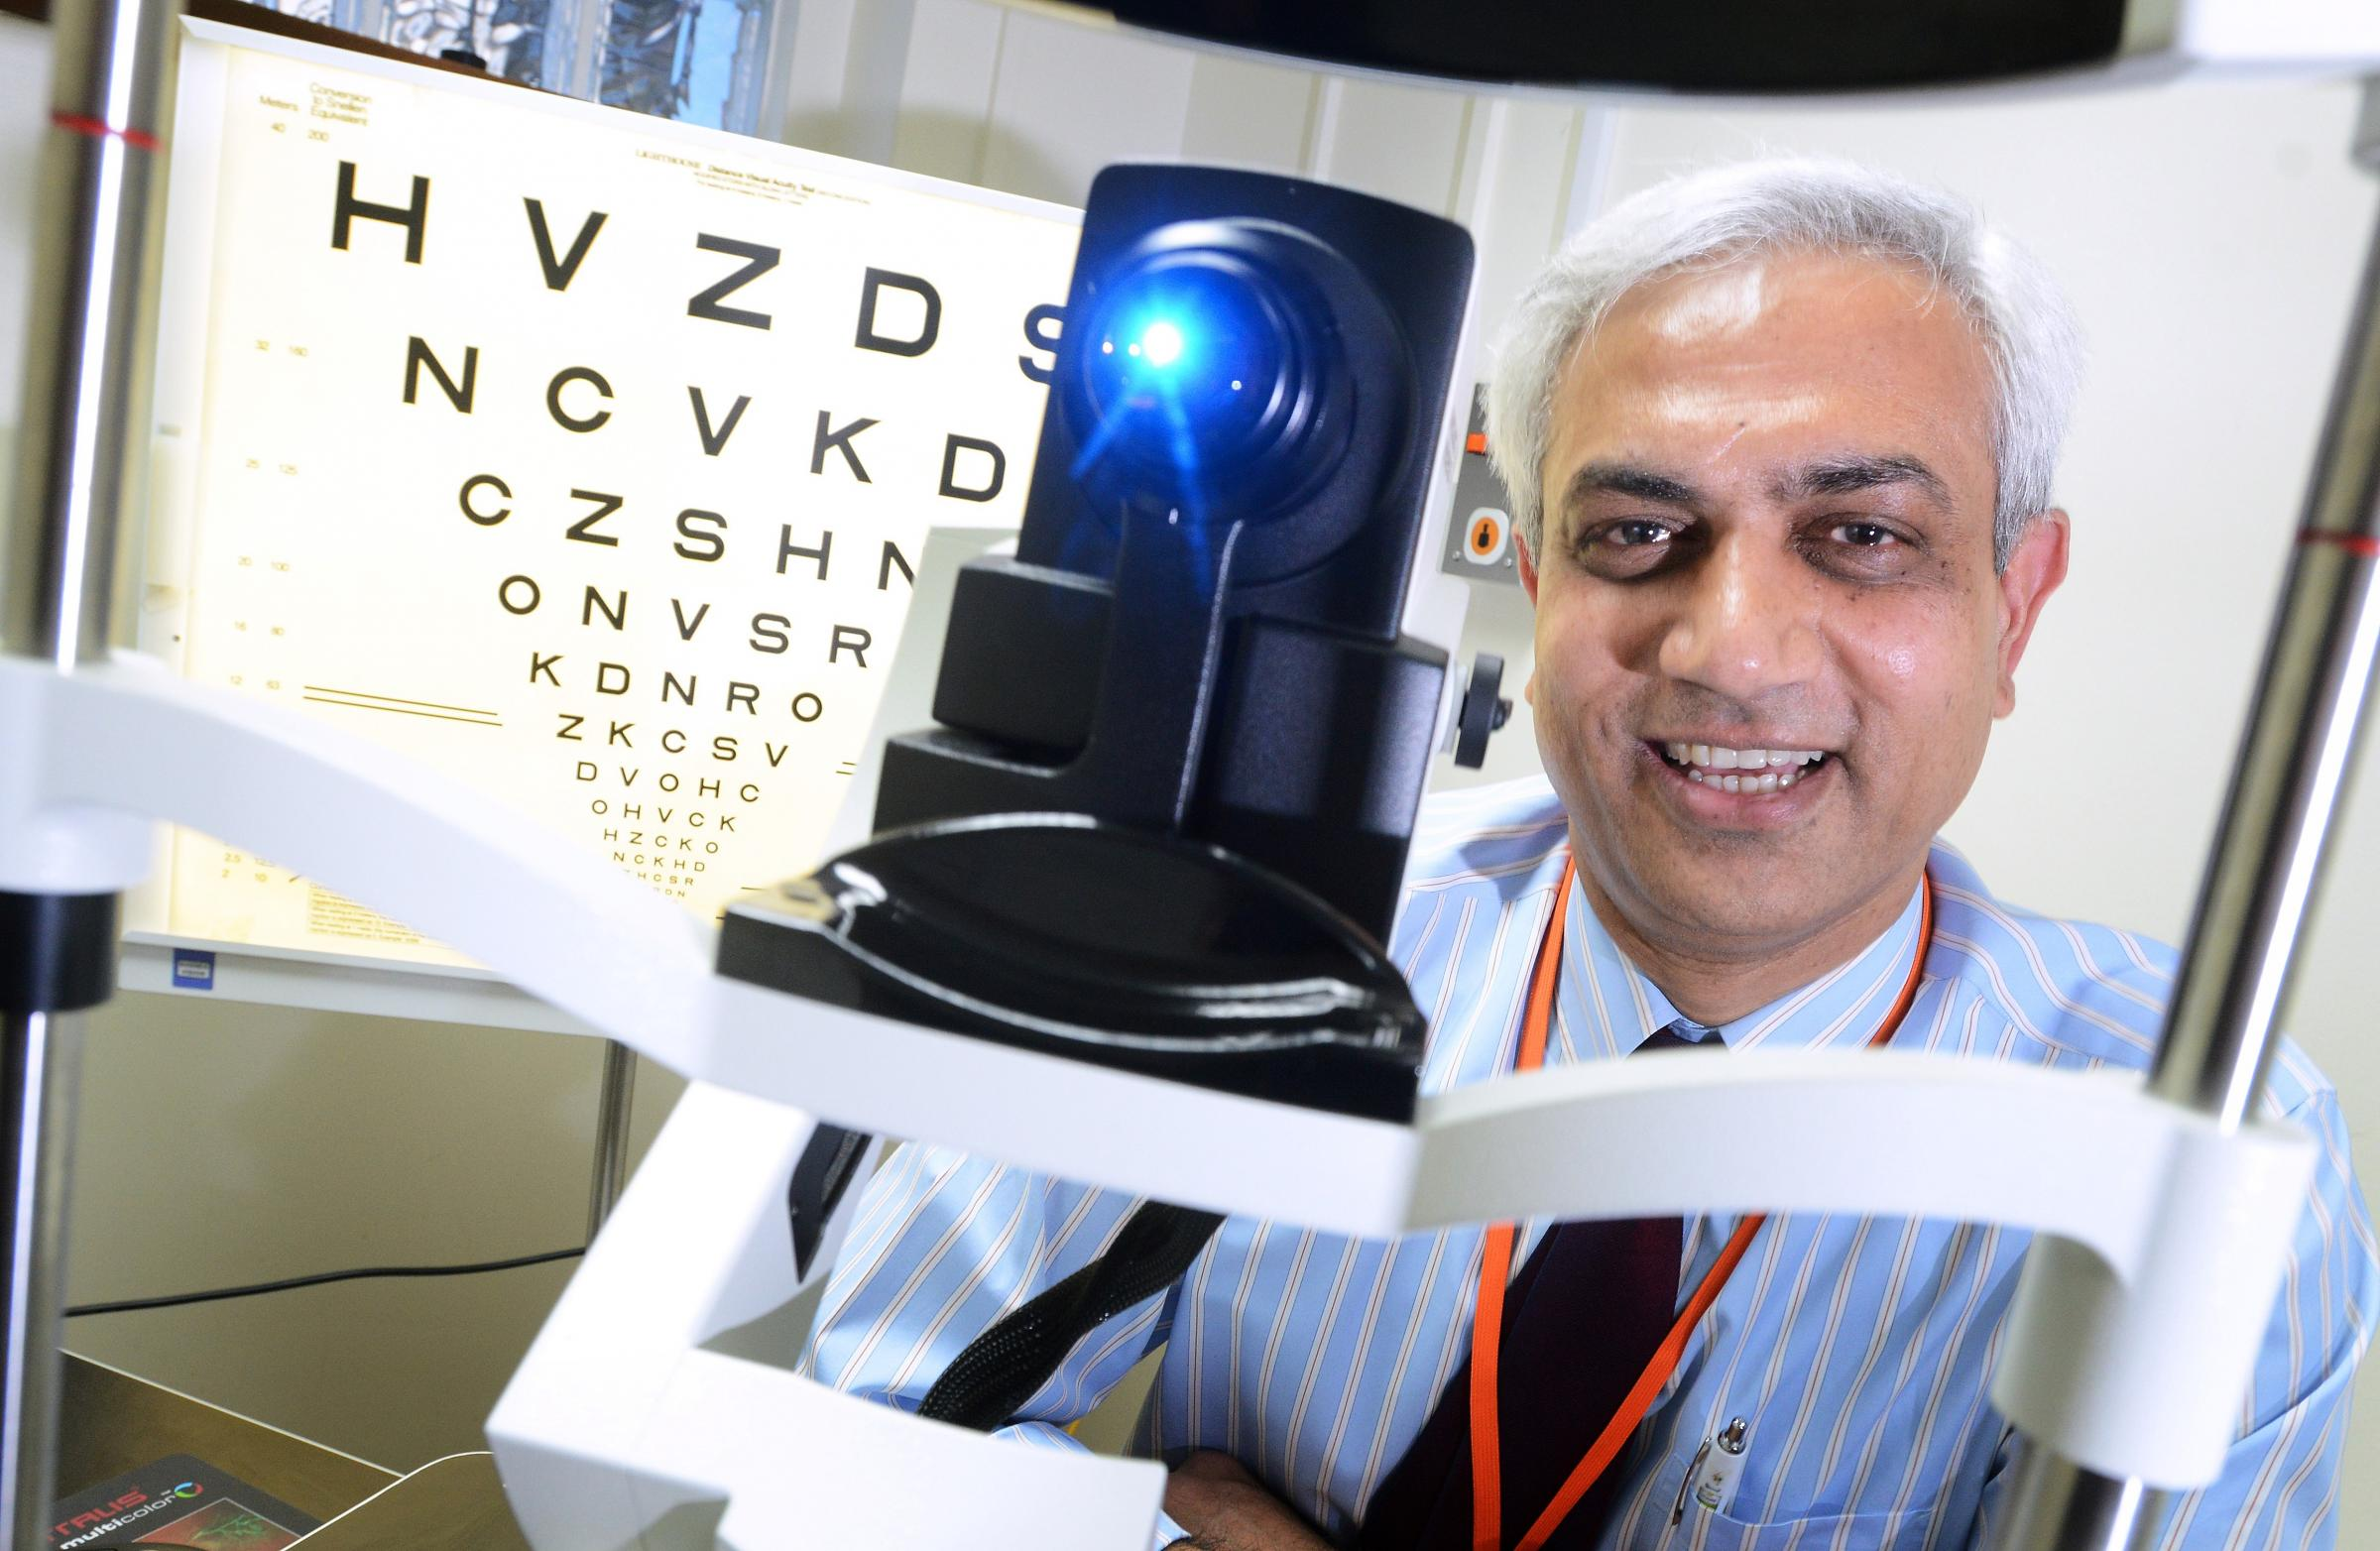 Consultant eye surgeon Faruque Ghanchi